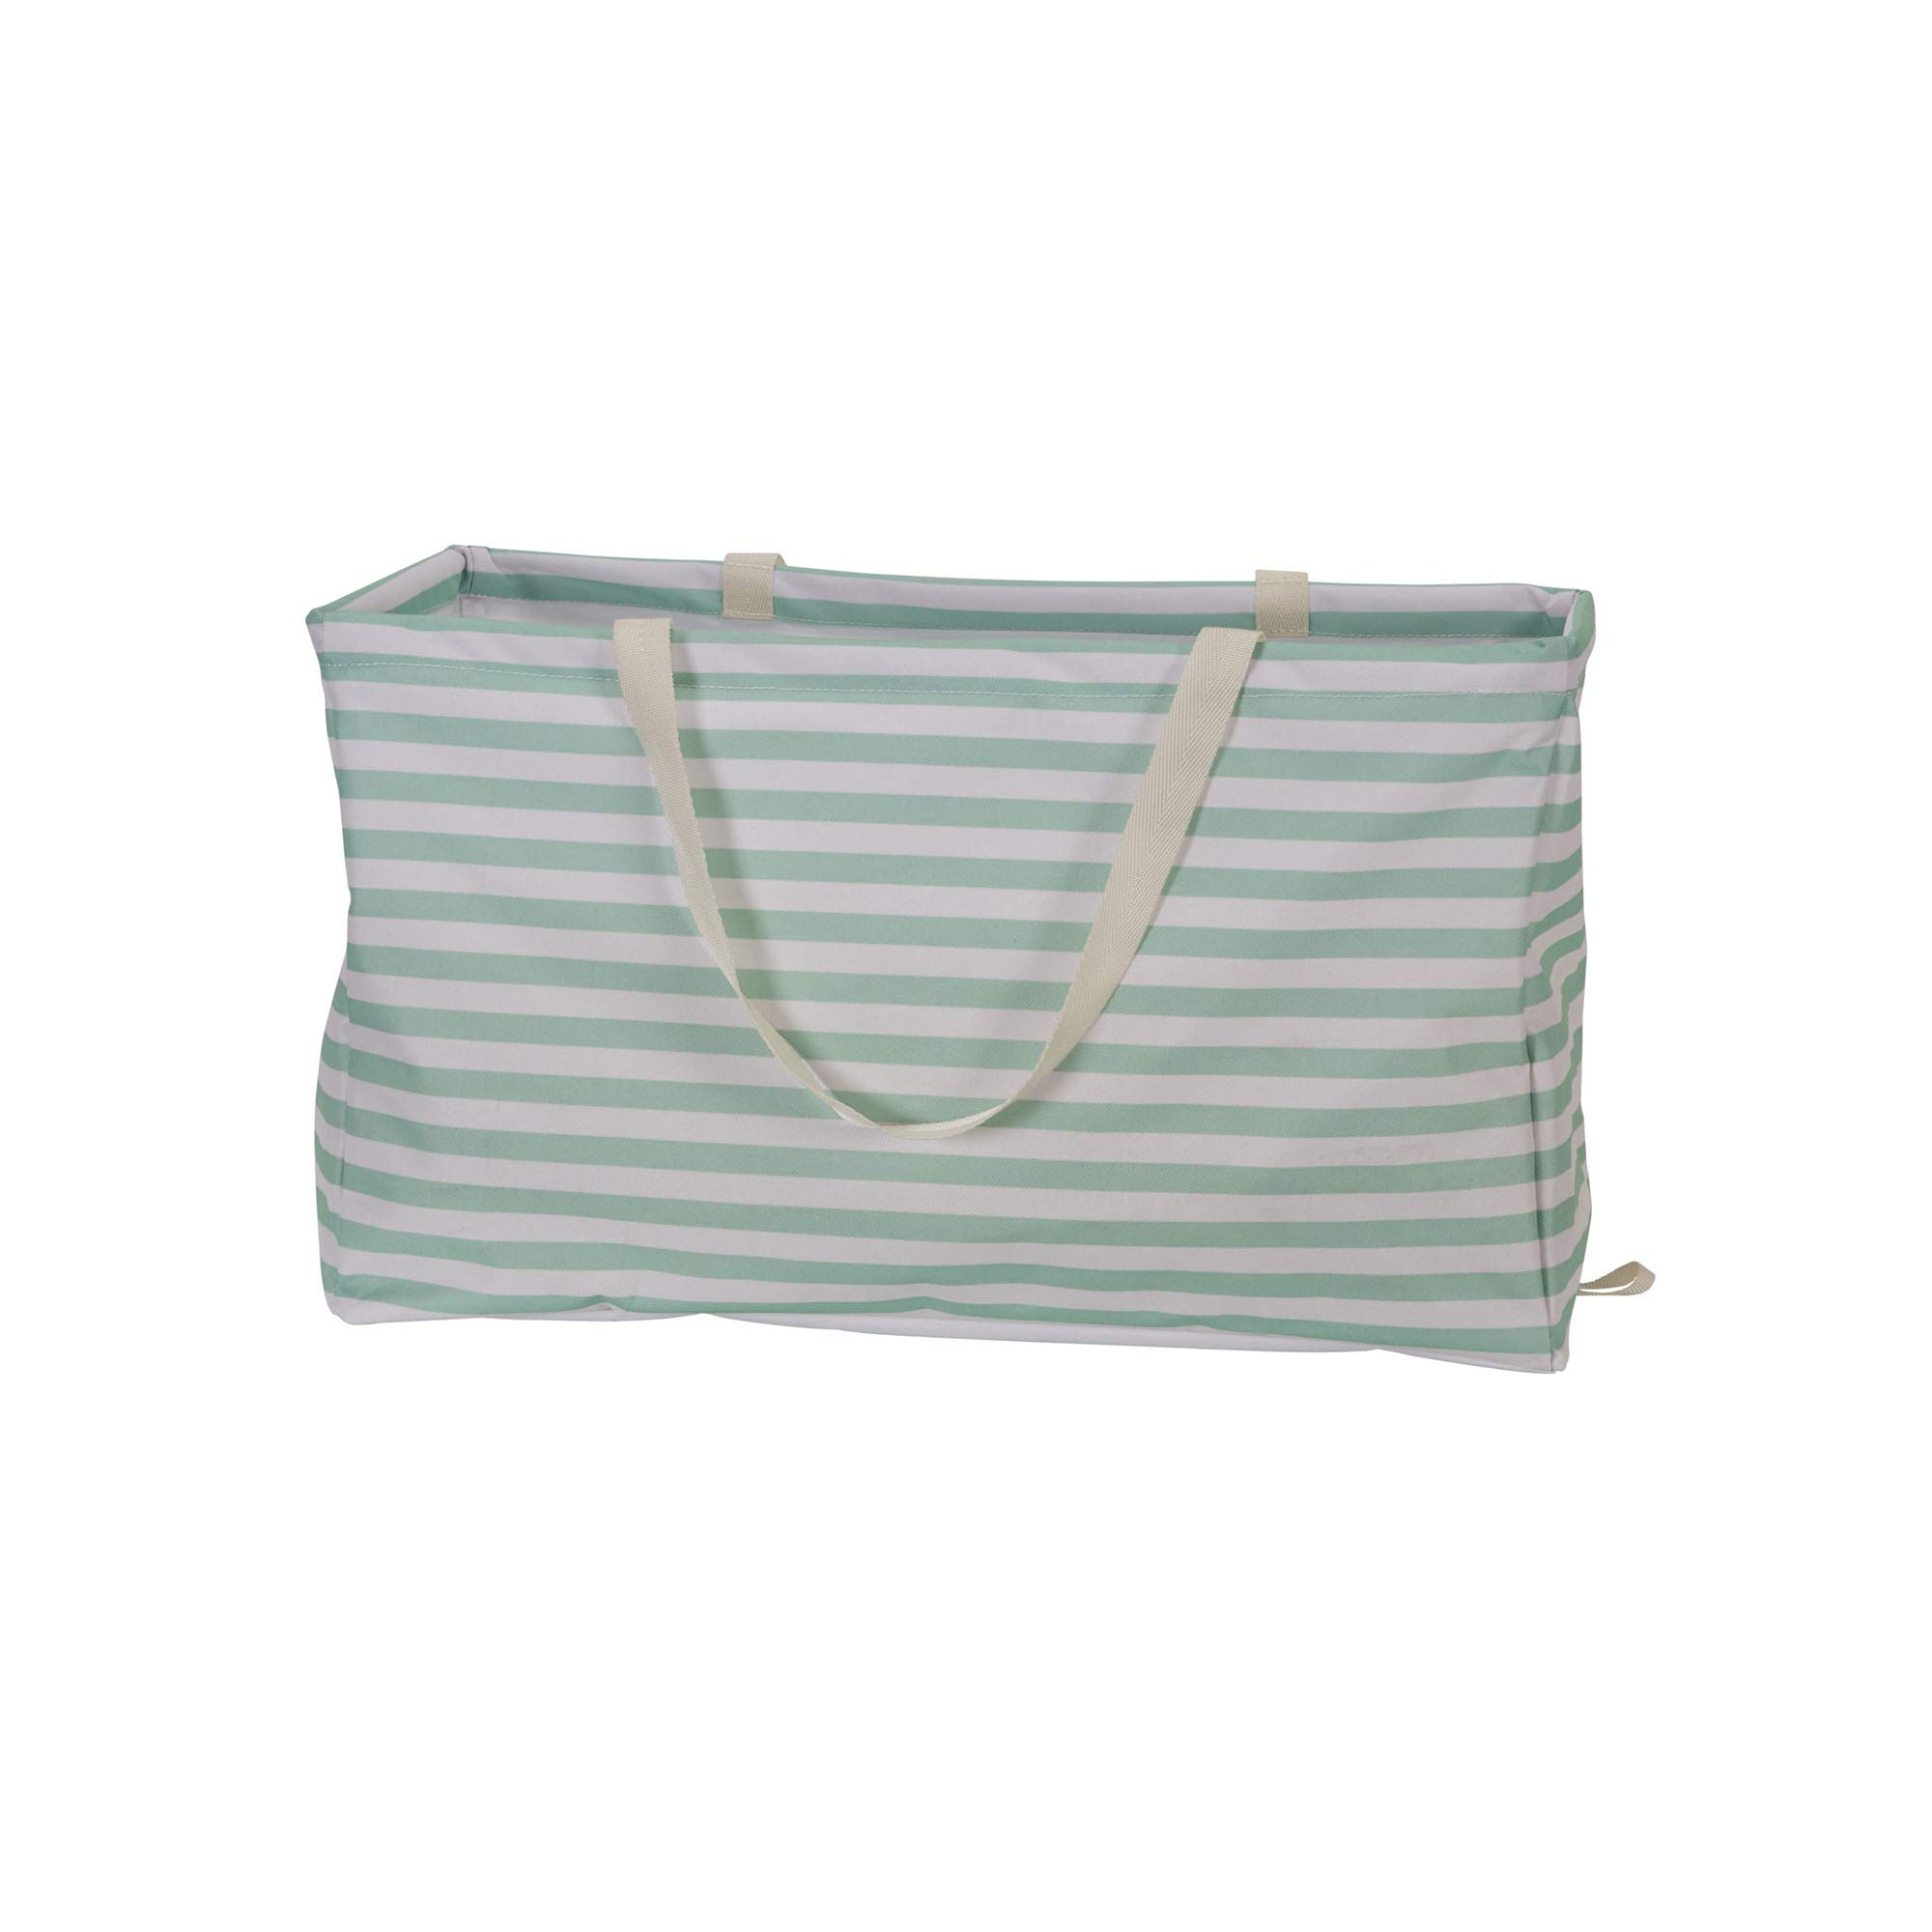 "Household Essentials 2242 Krush Canvas Utility Tote | Reusable Grocery Shopping Laundry Carry Bag | Teal And White Stripes, 22"" L X 11"" W X 13"" H,"